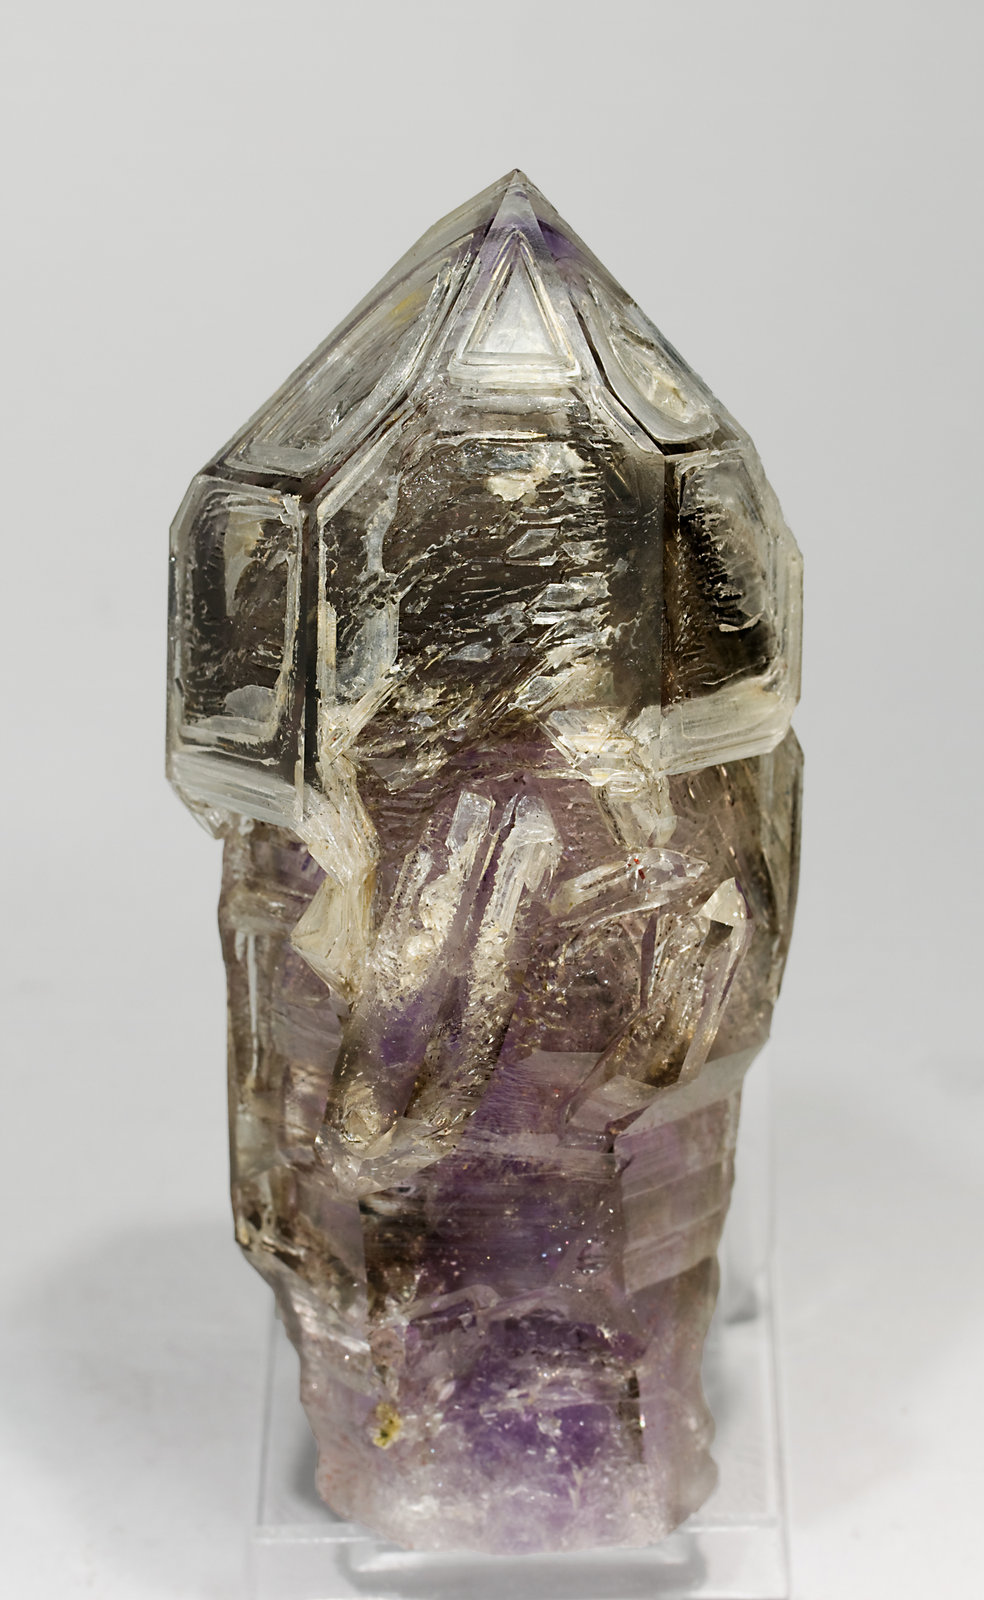 specimens/s_imagesS5/Quartz_Amethyst-TF91S5f.jpg